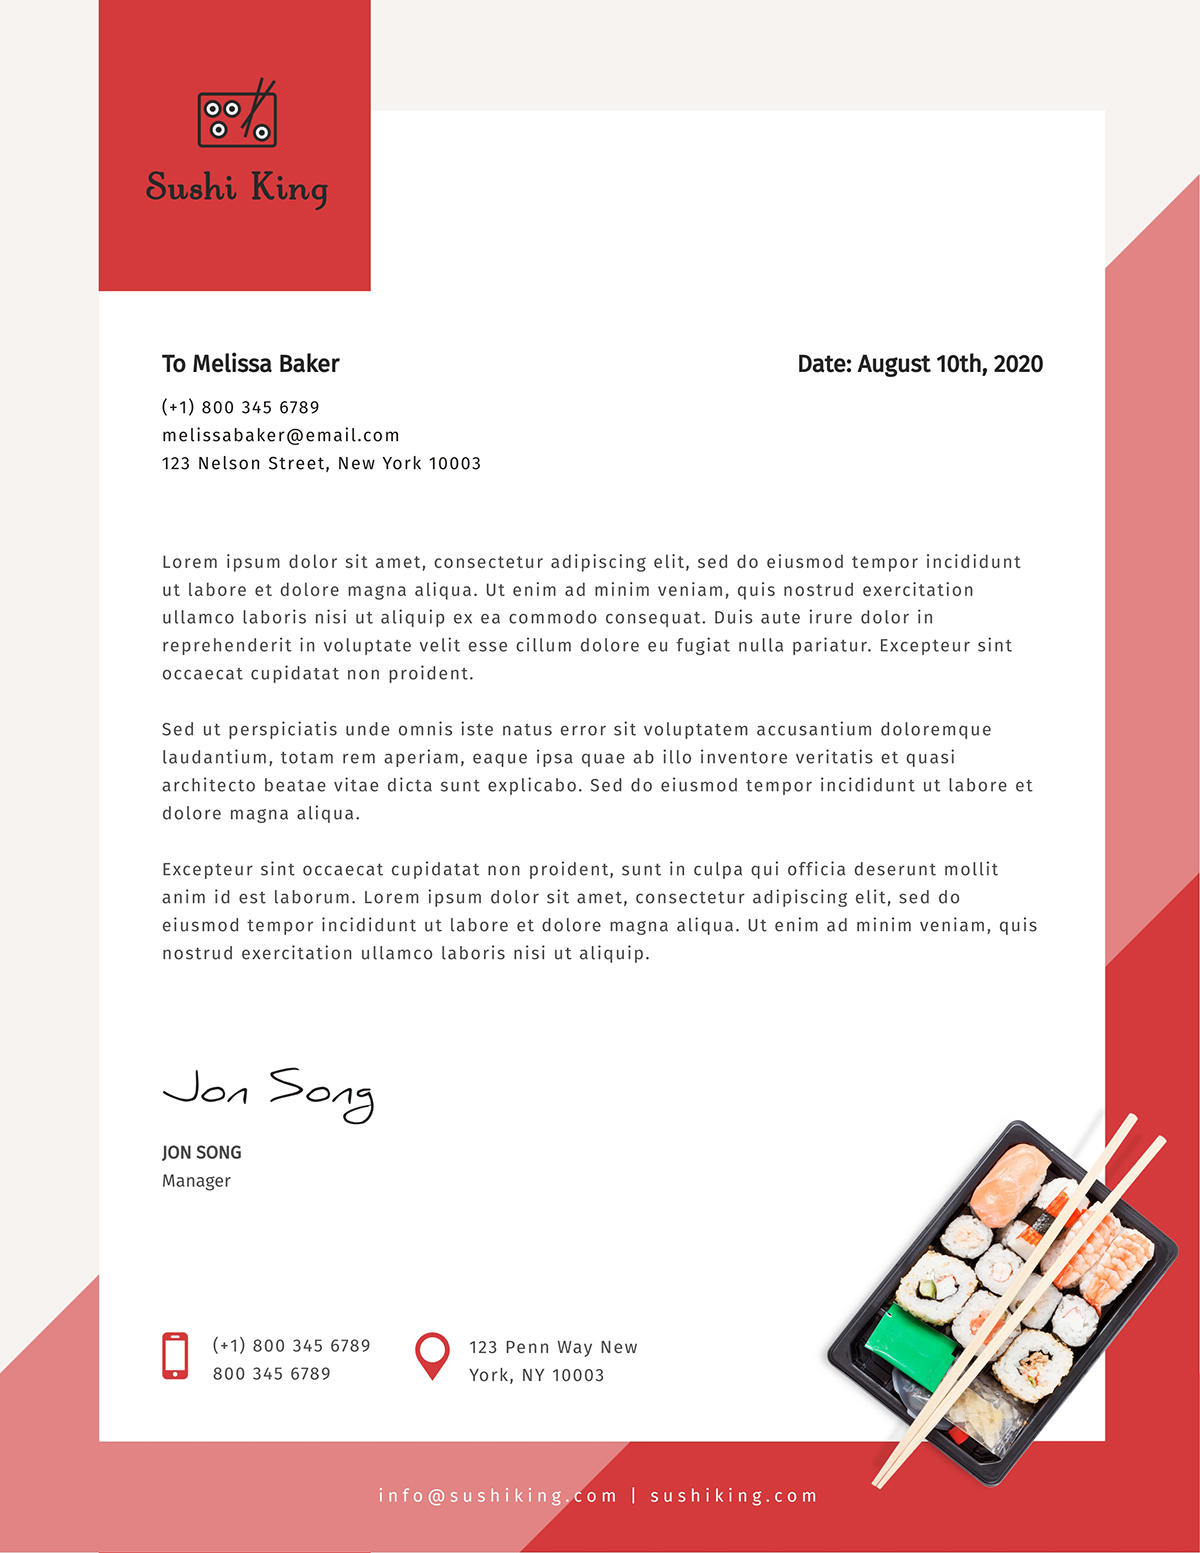 Pink and red business letter template available on Visme.